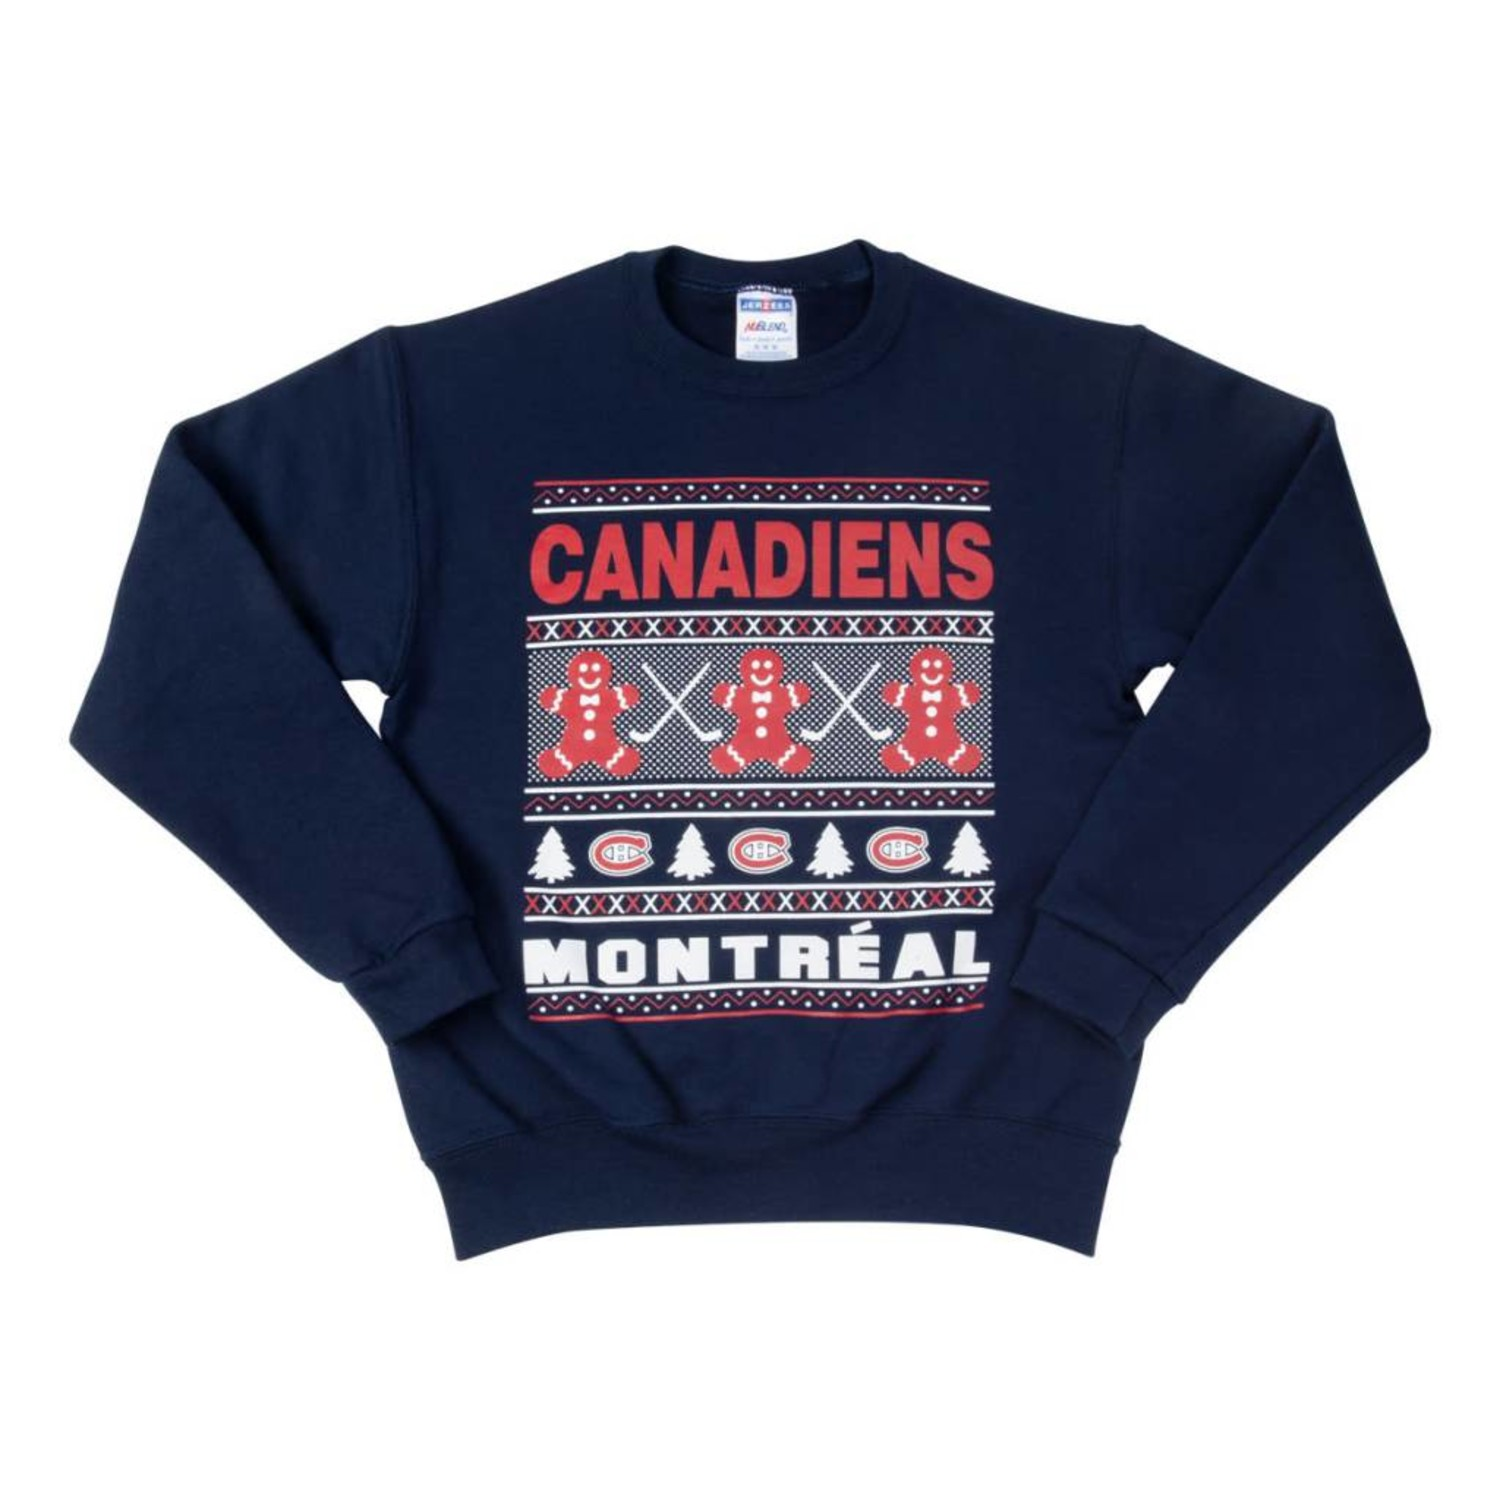 premium selection 9d25d 1201e Canadiens Junior Ugly Sweater - Tricolore Sports